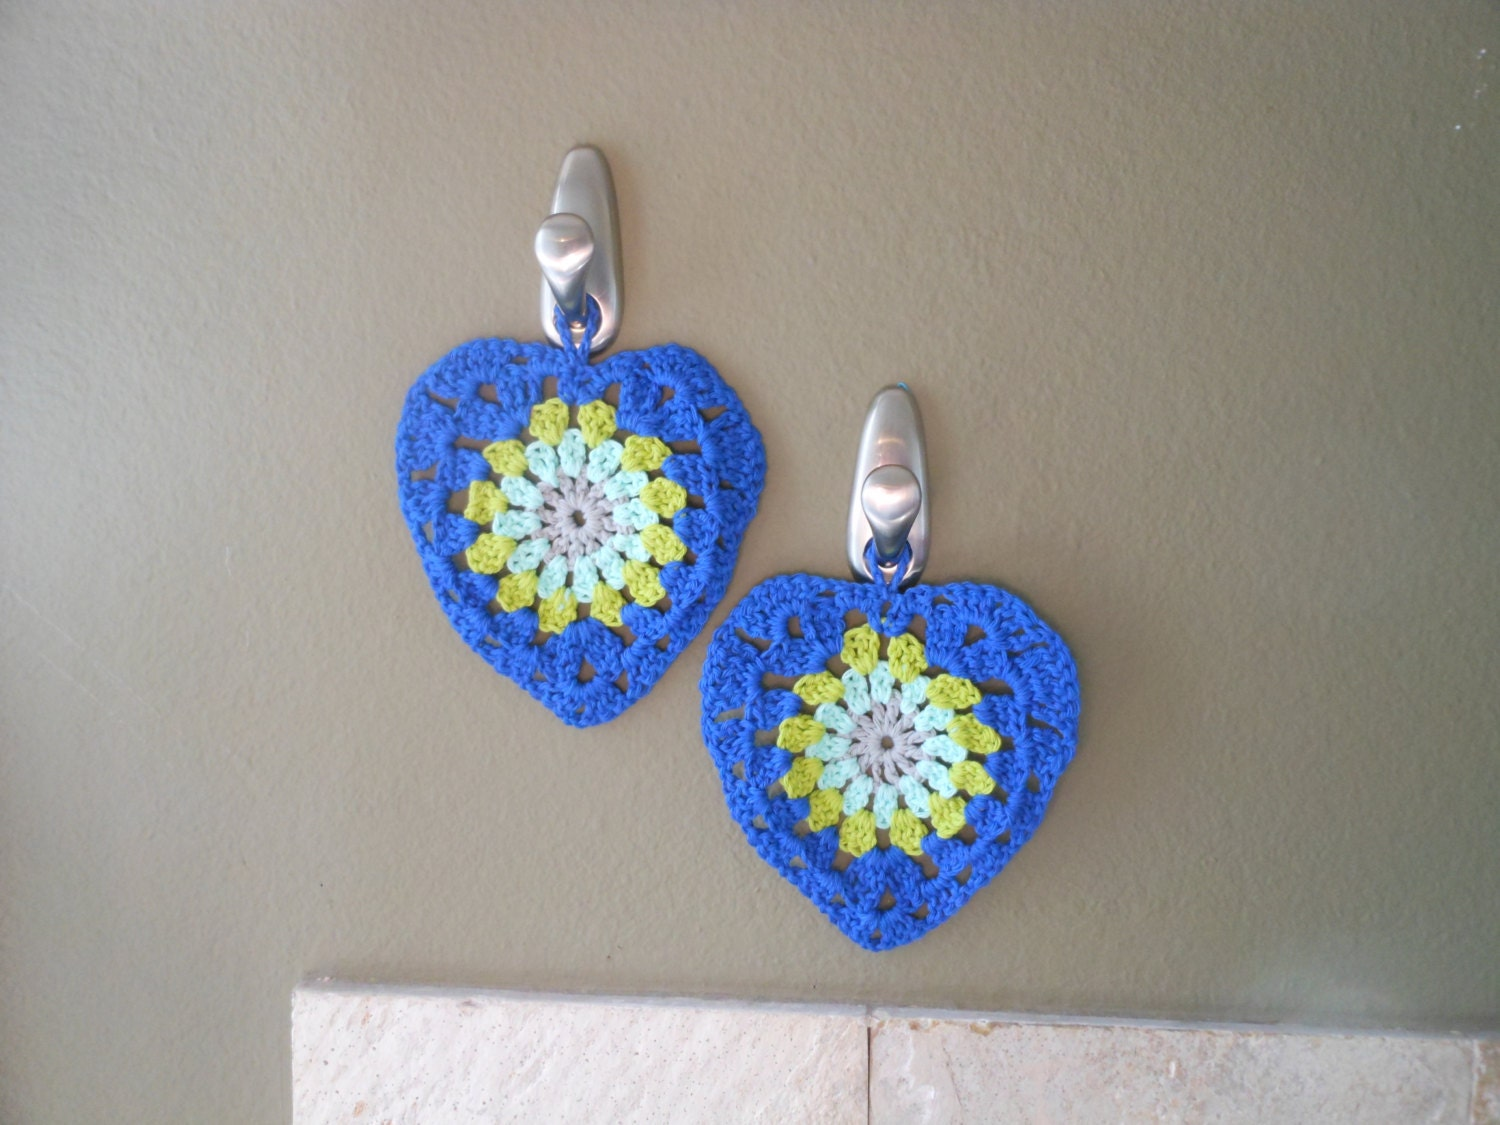 Crochet Wall Hanging : Hanging Wall Decor Crochet Kitchen Decor by KingStitchStudios